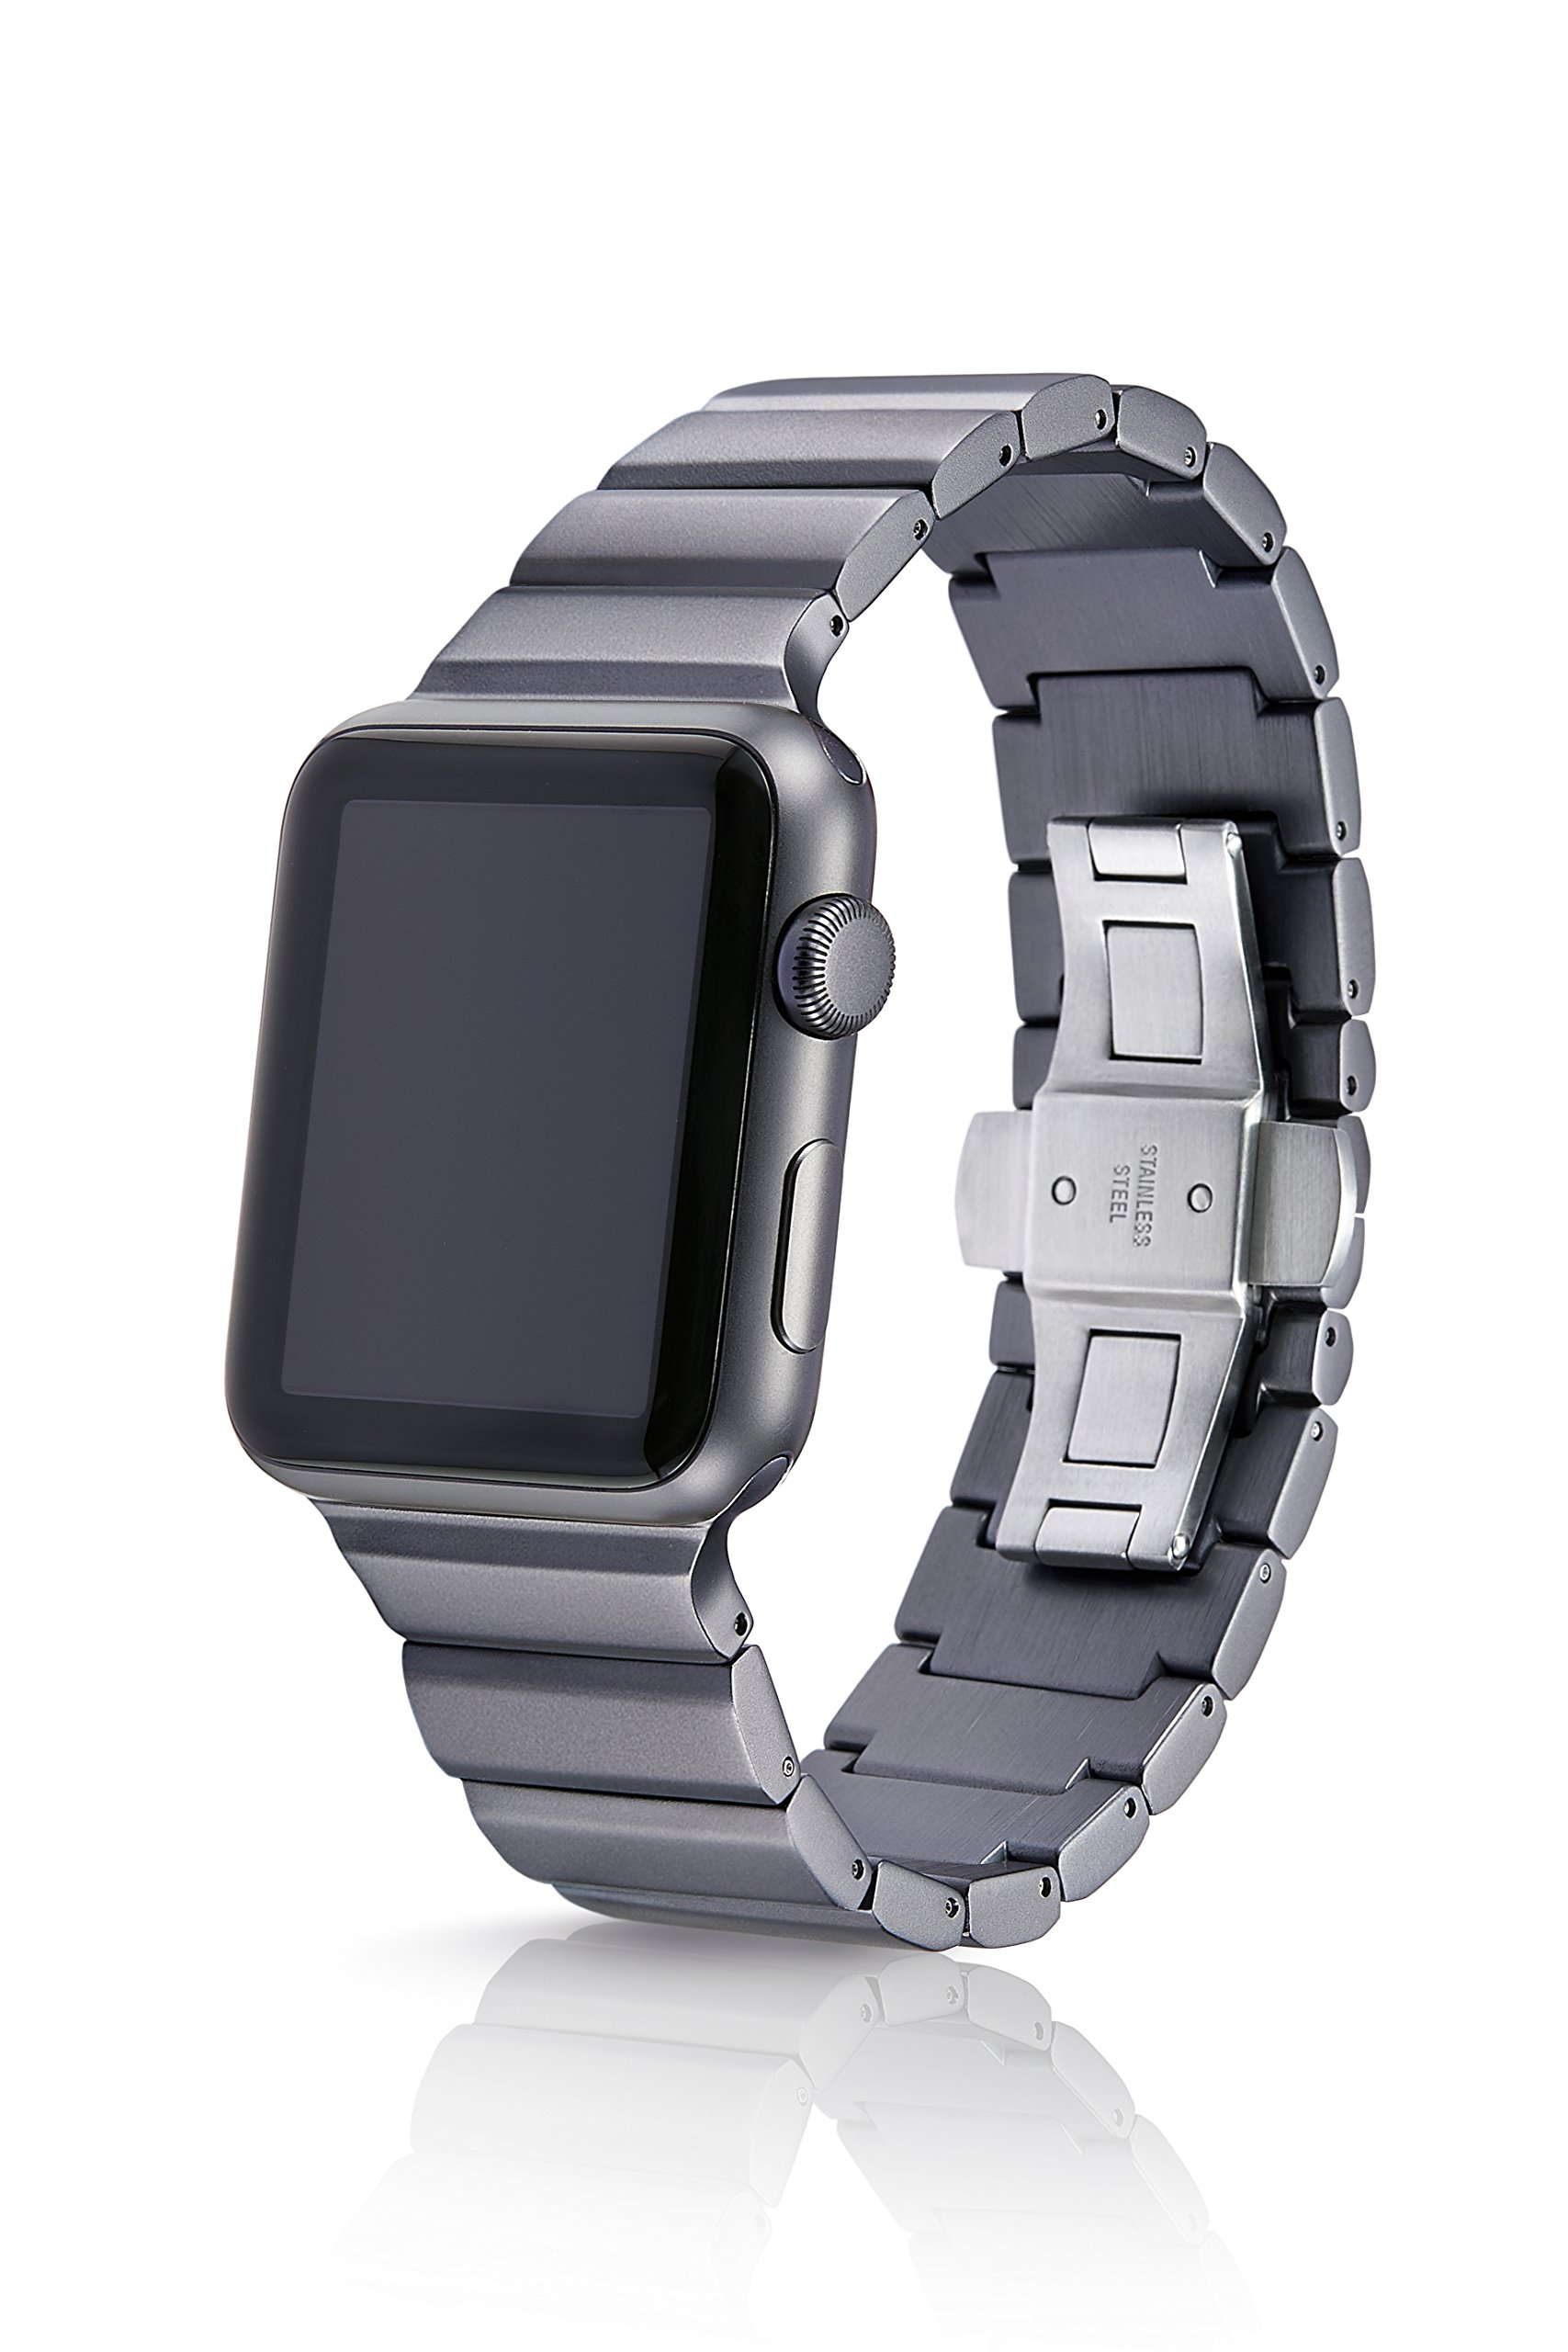 38/40mm JUUK Cosmic Grey Ligero Premium Watch Band Made for The Apple Watch, Using Aircraft Grade, Hard Anodized 6000 Series Aluminum with a Solid Stainless Steel Butterfly deployant Buckle (Matte)